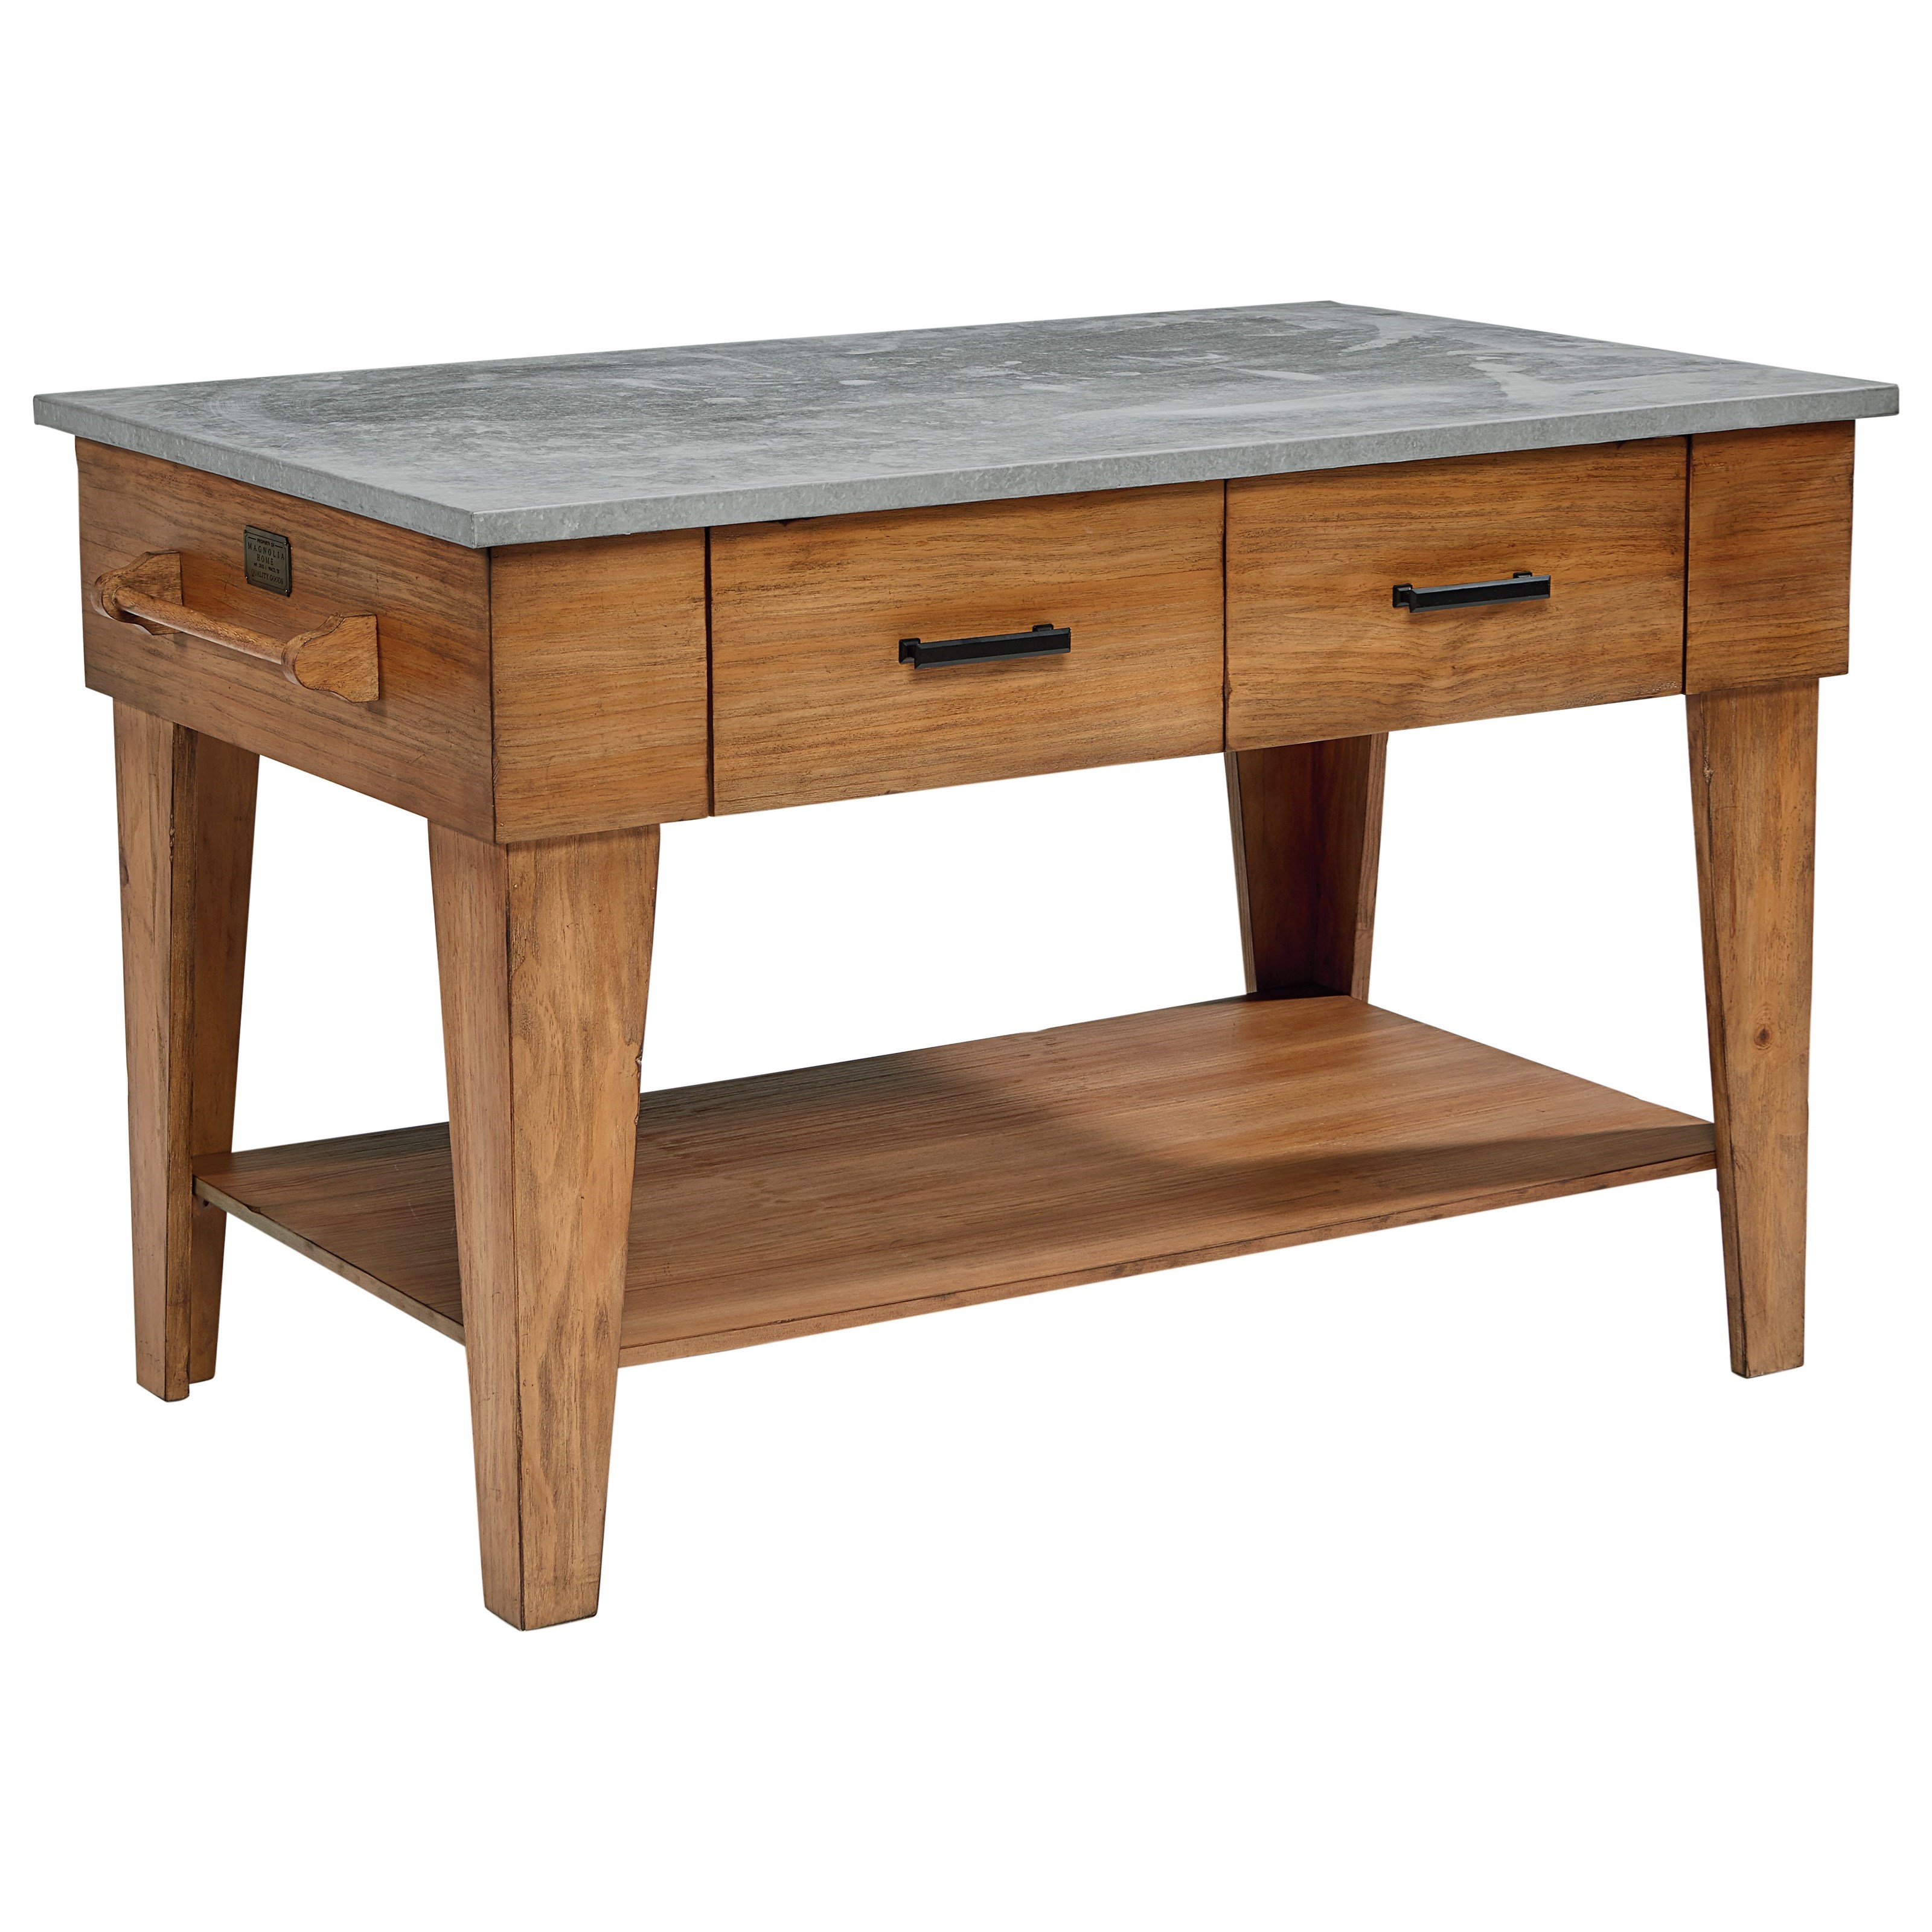 Kitchen Island with 2 Drawers and an Open Shelf